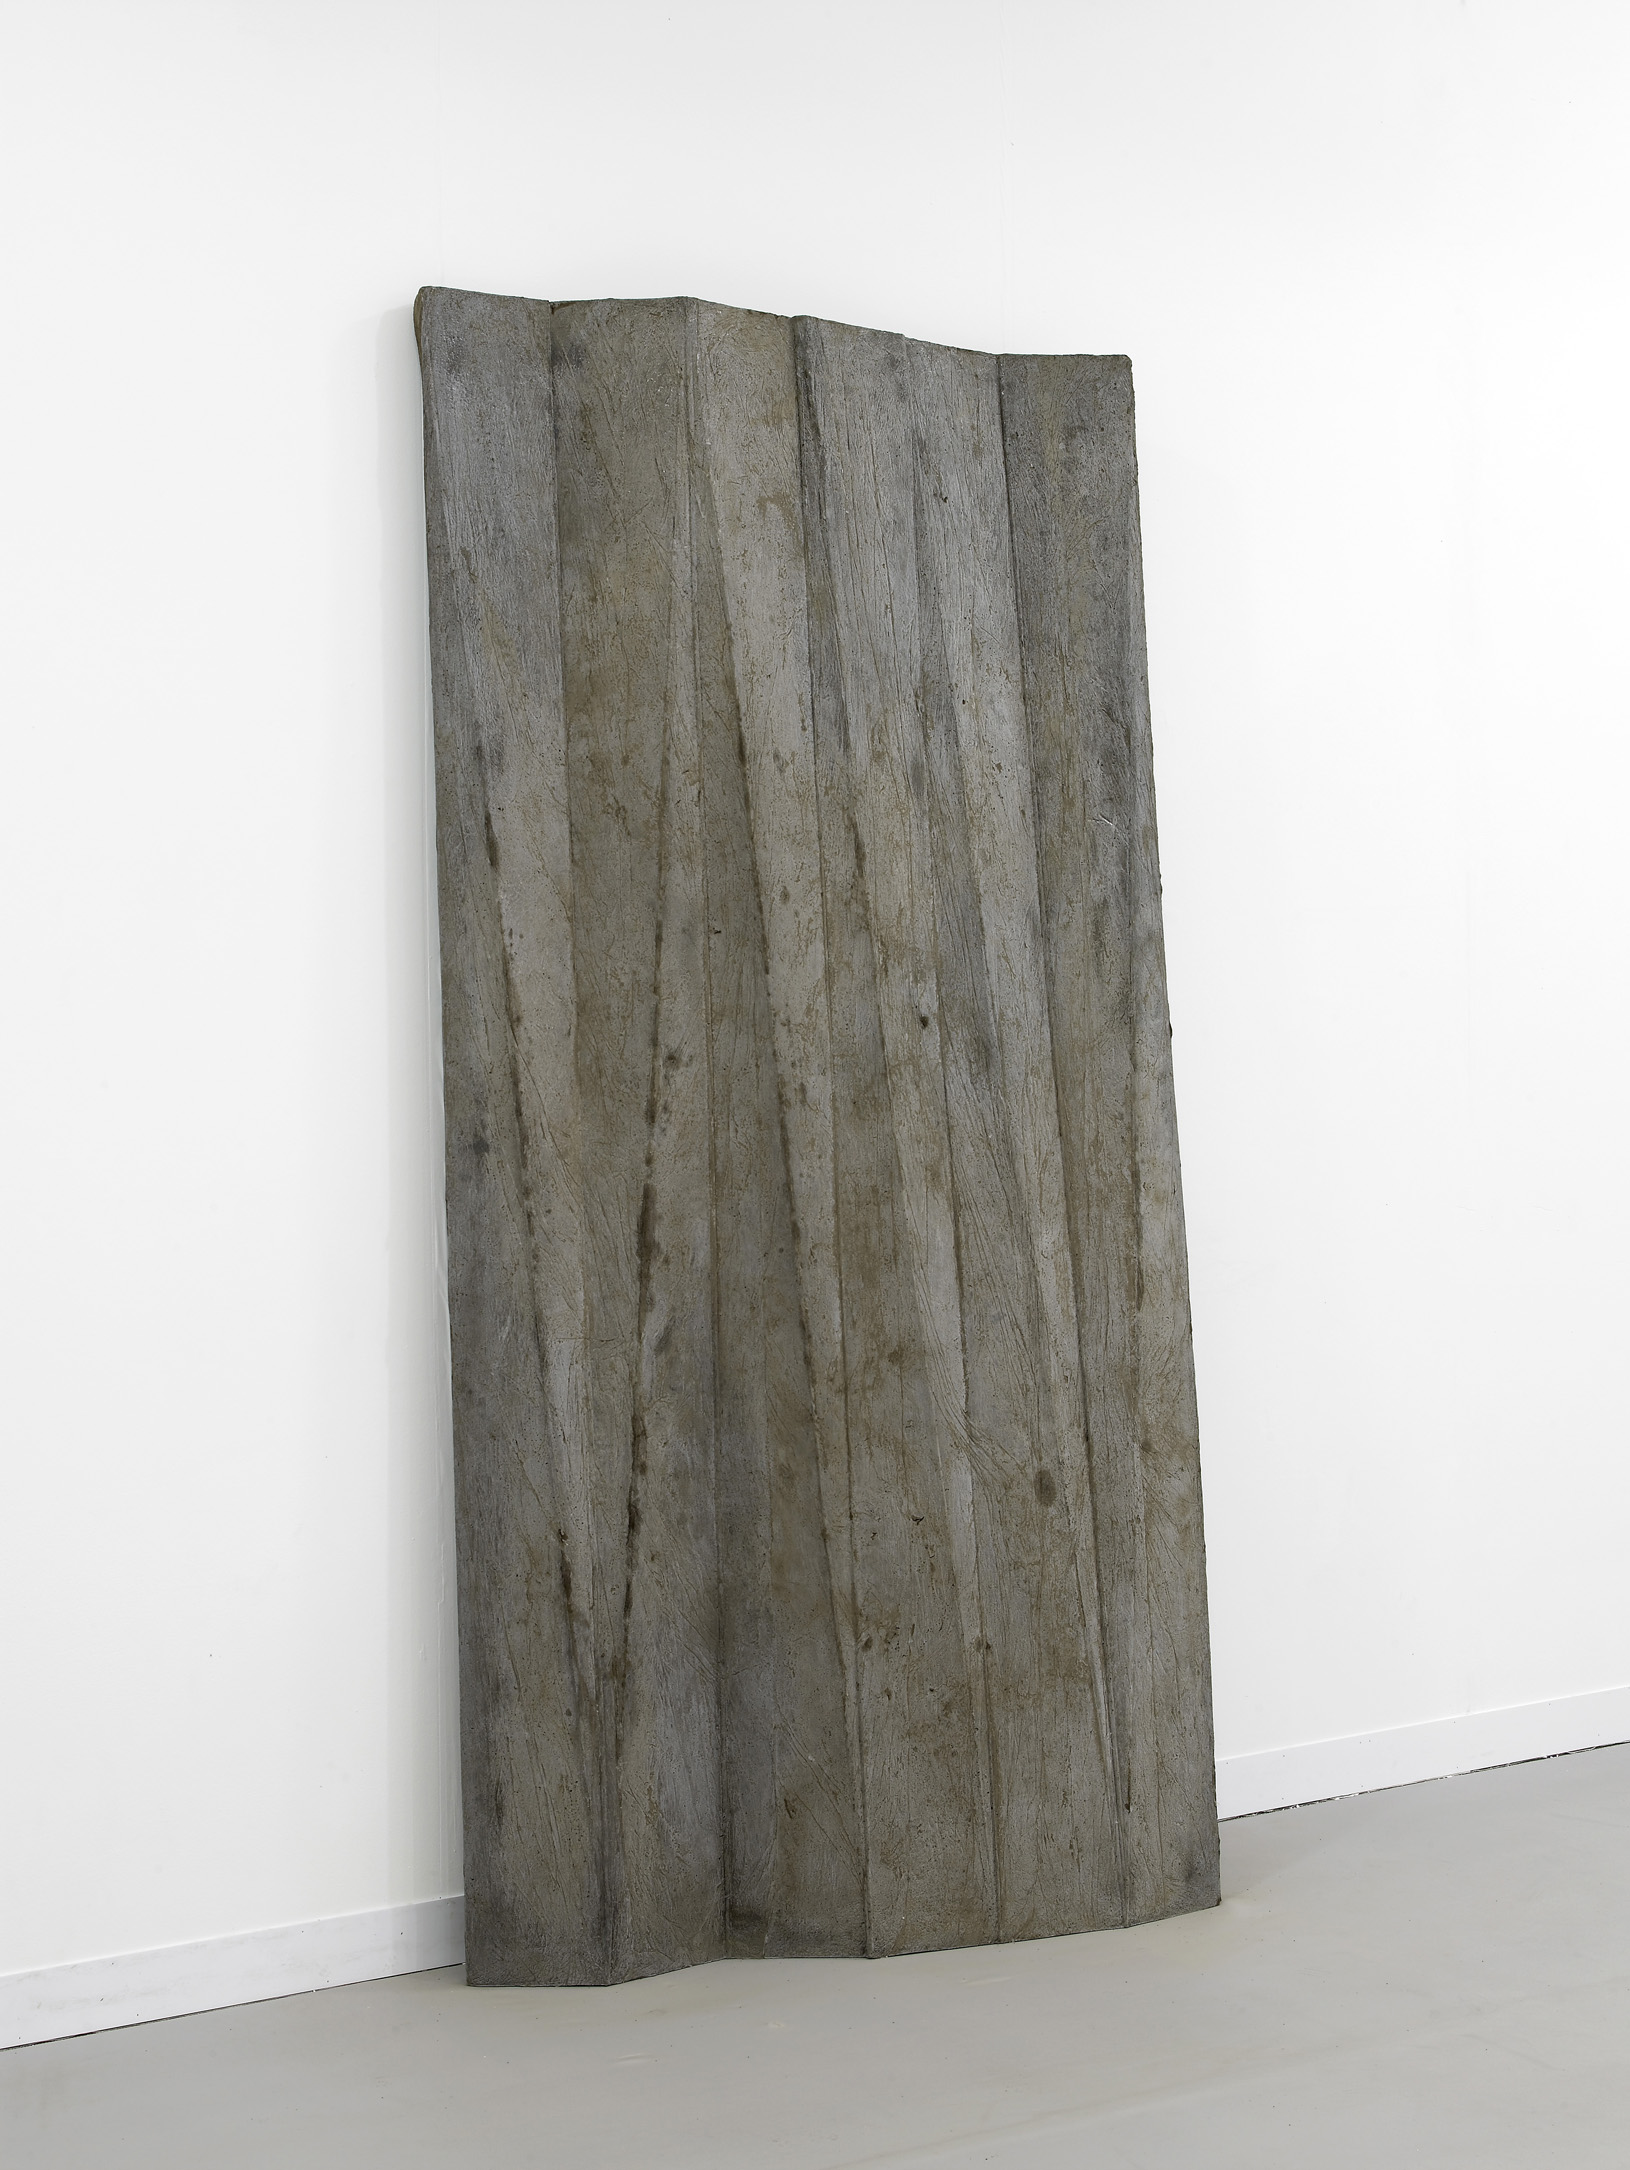 cope (working title) 2011 Concrete 154 x 12 x 5 cm / 60.6 x 4.7 x 2 in